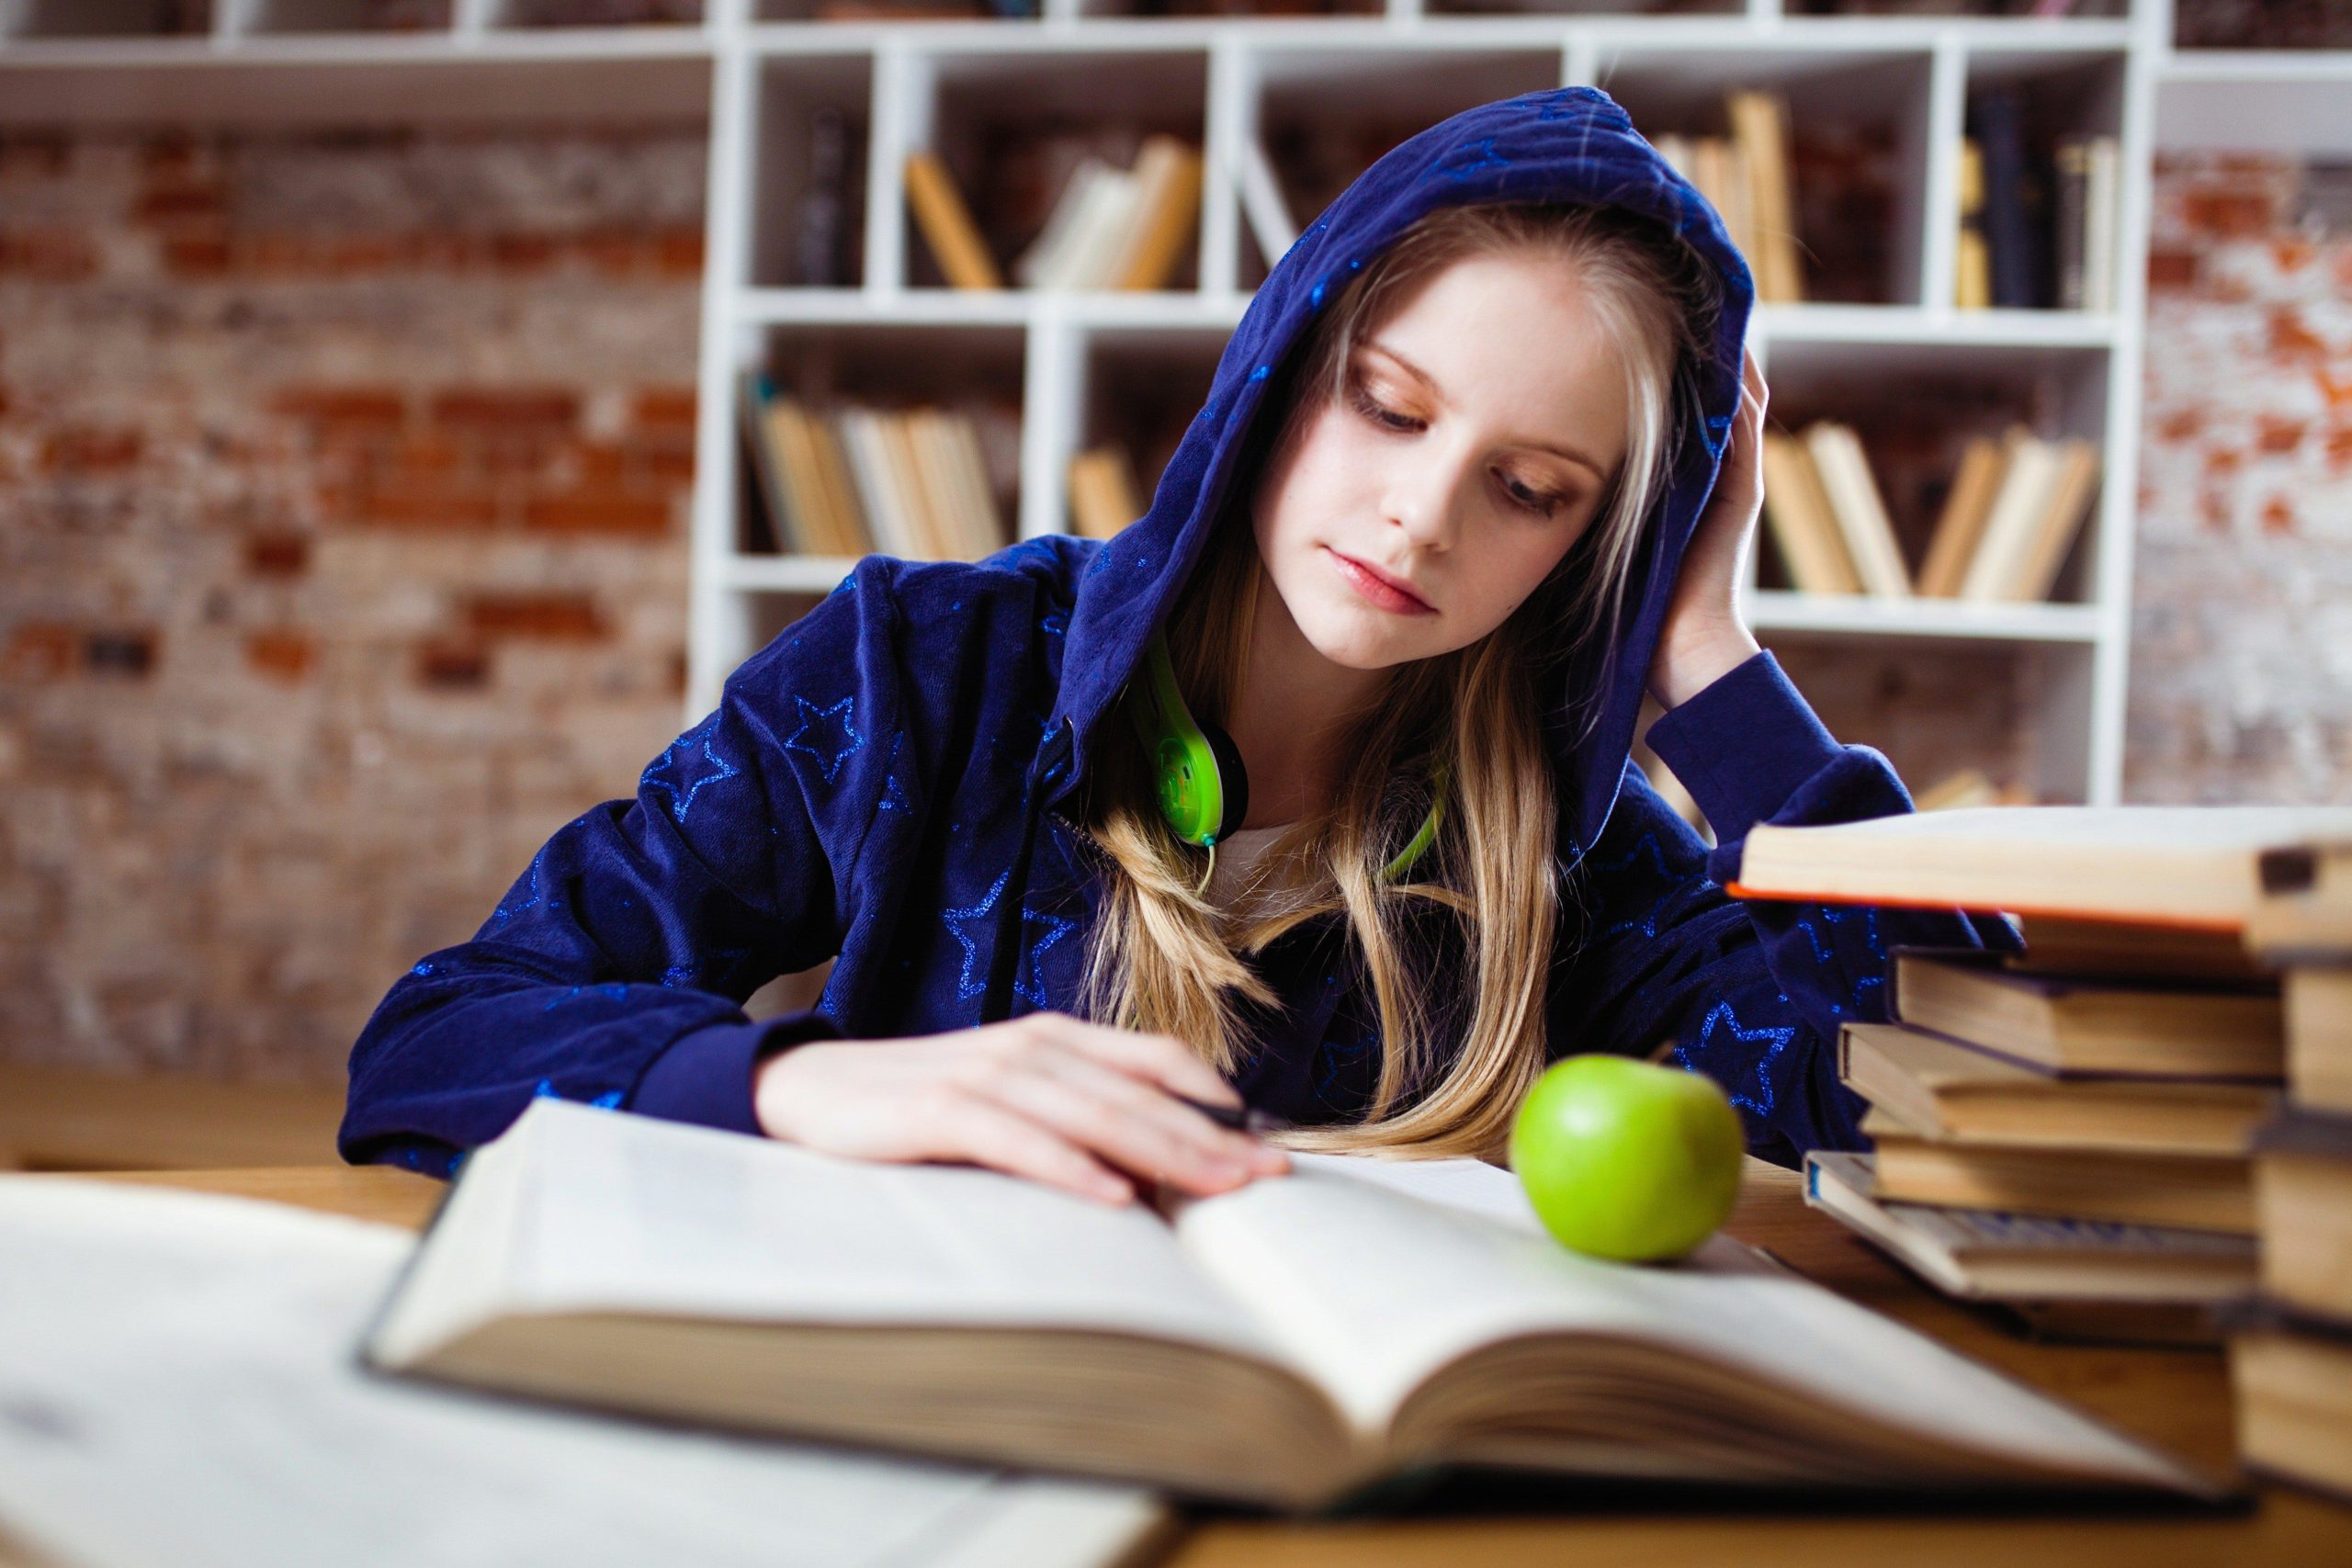 How to Study Smart?